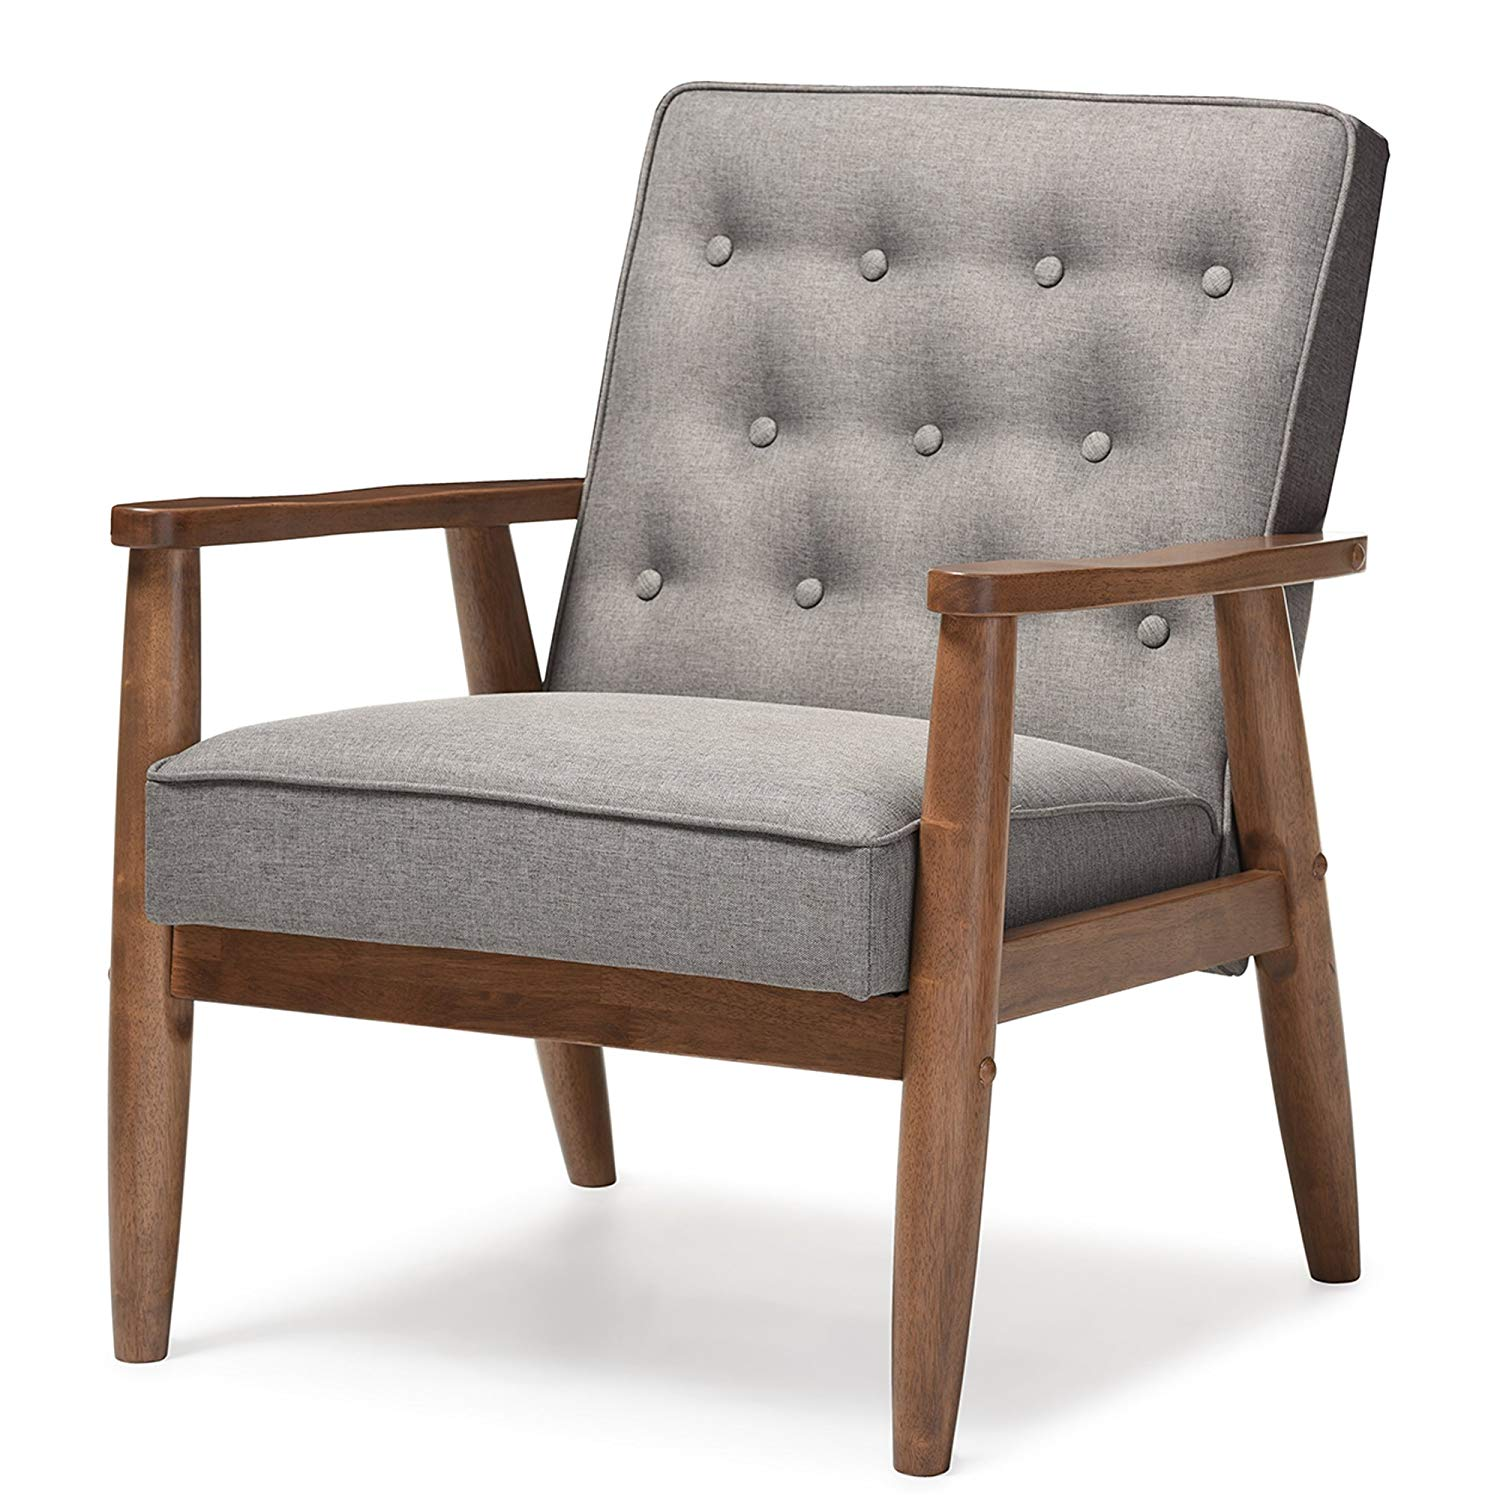 Baxton Studio Sorrento Mid-Century Retro Modern Fabric Upholstered Wooden Lounge Chair, Grey